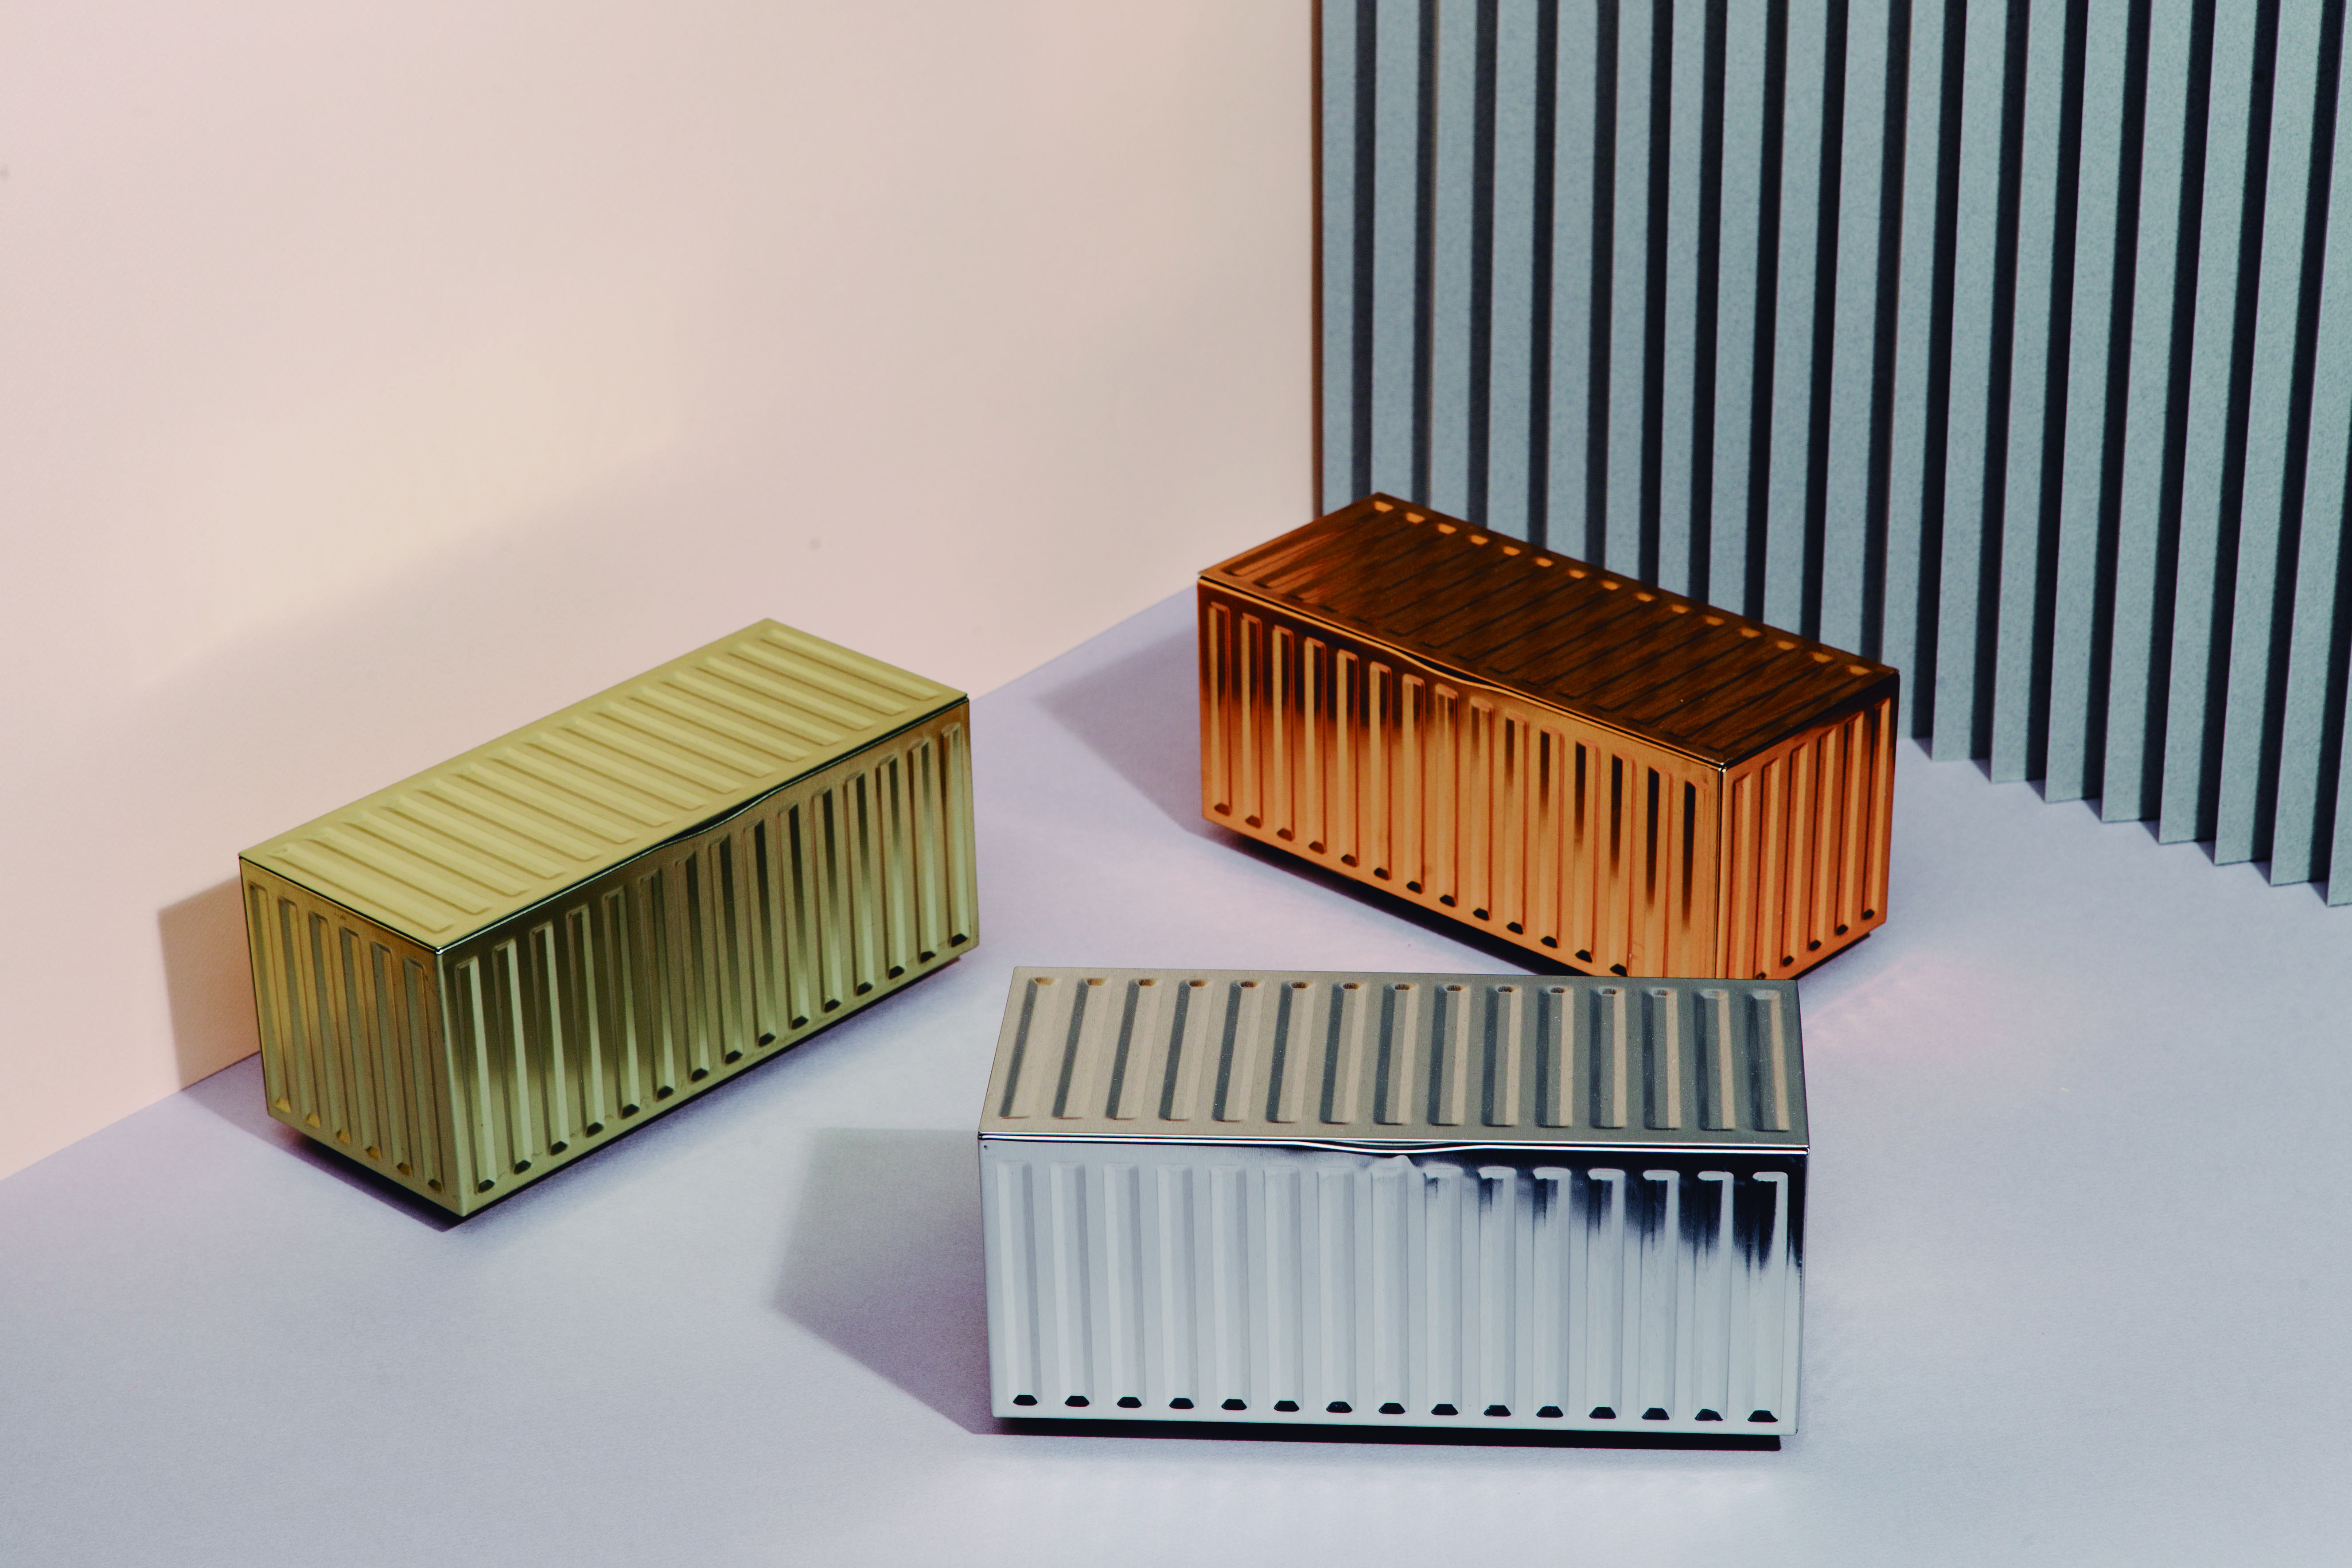 Opbevaringscontainere - Container Boxes (Metal series) 3 stk.